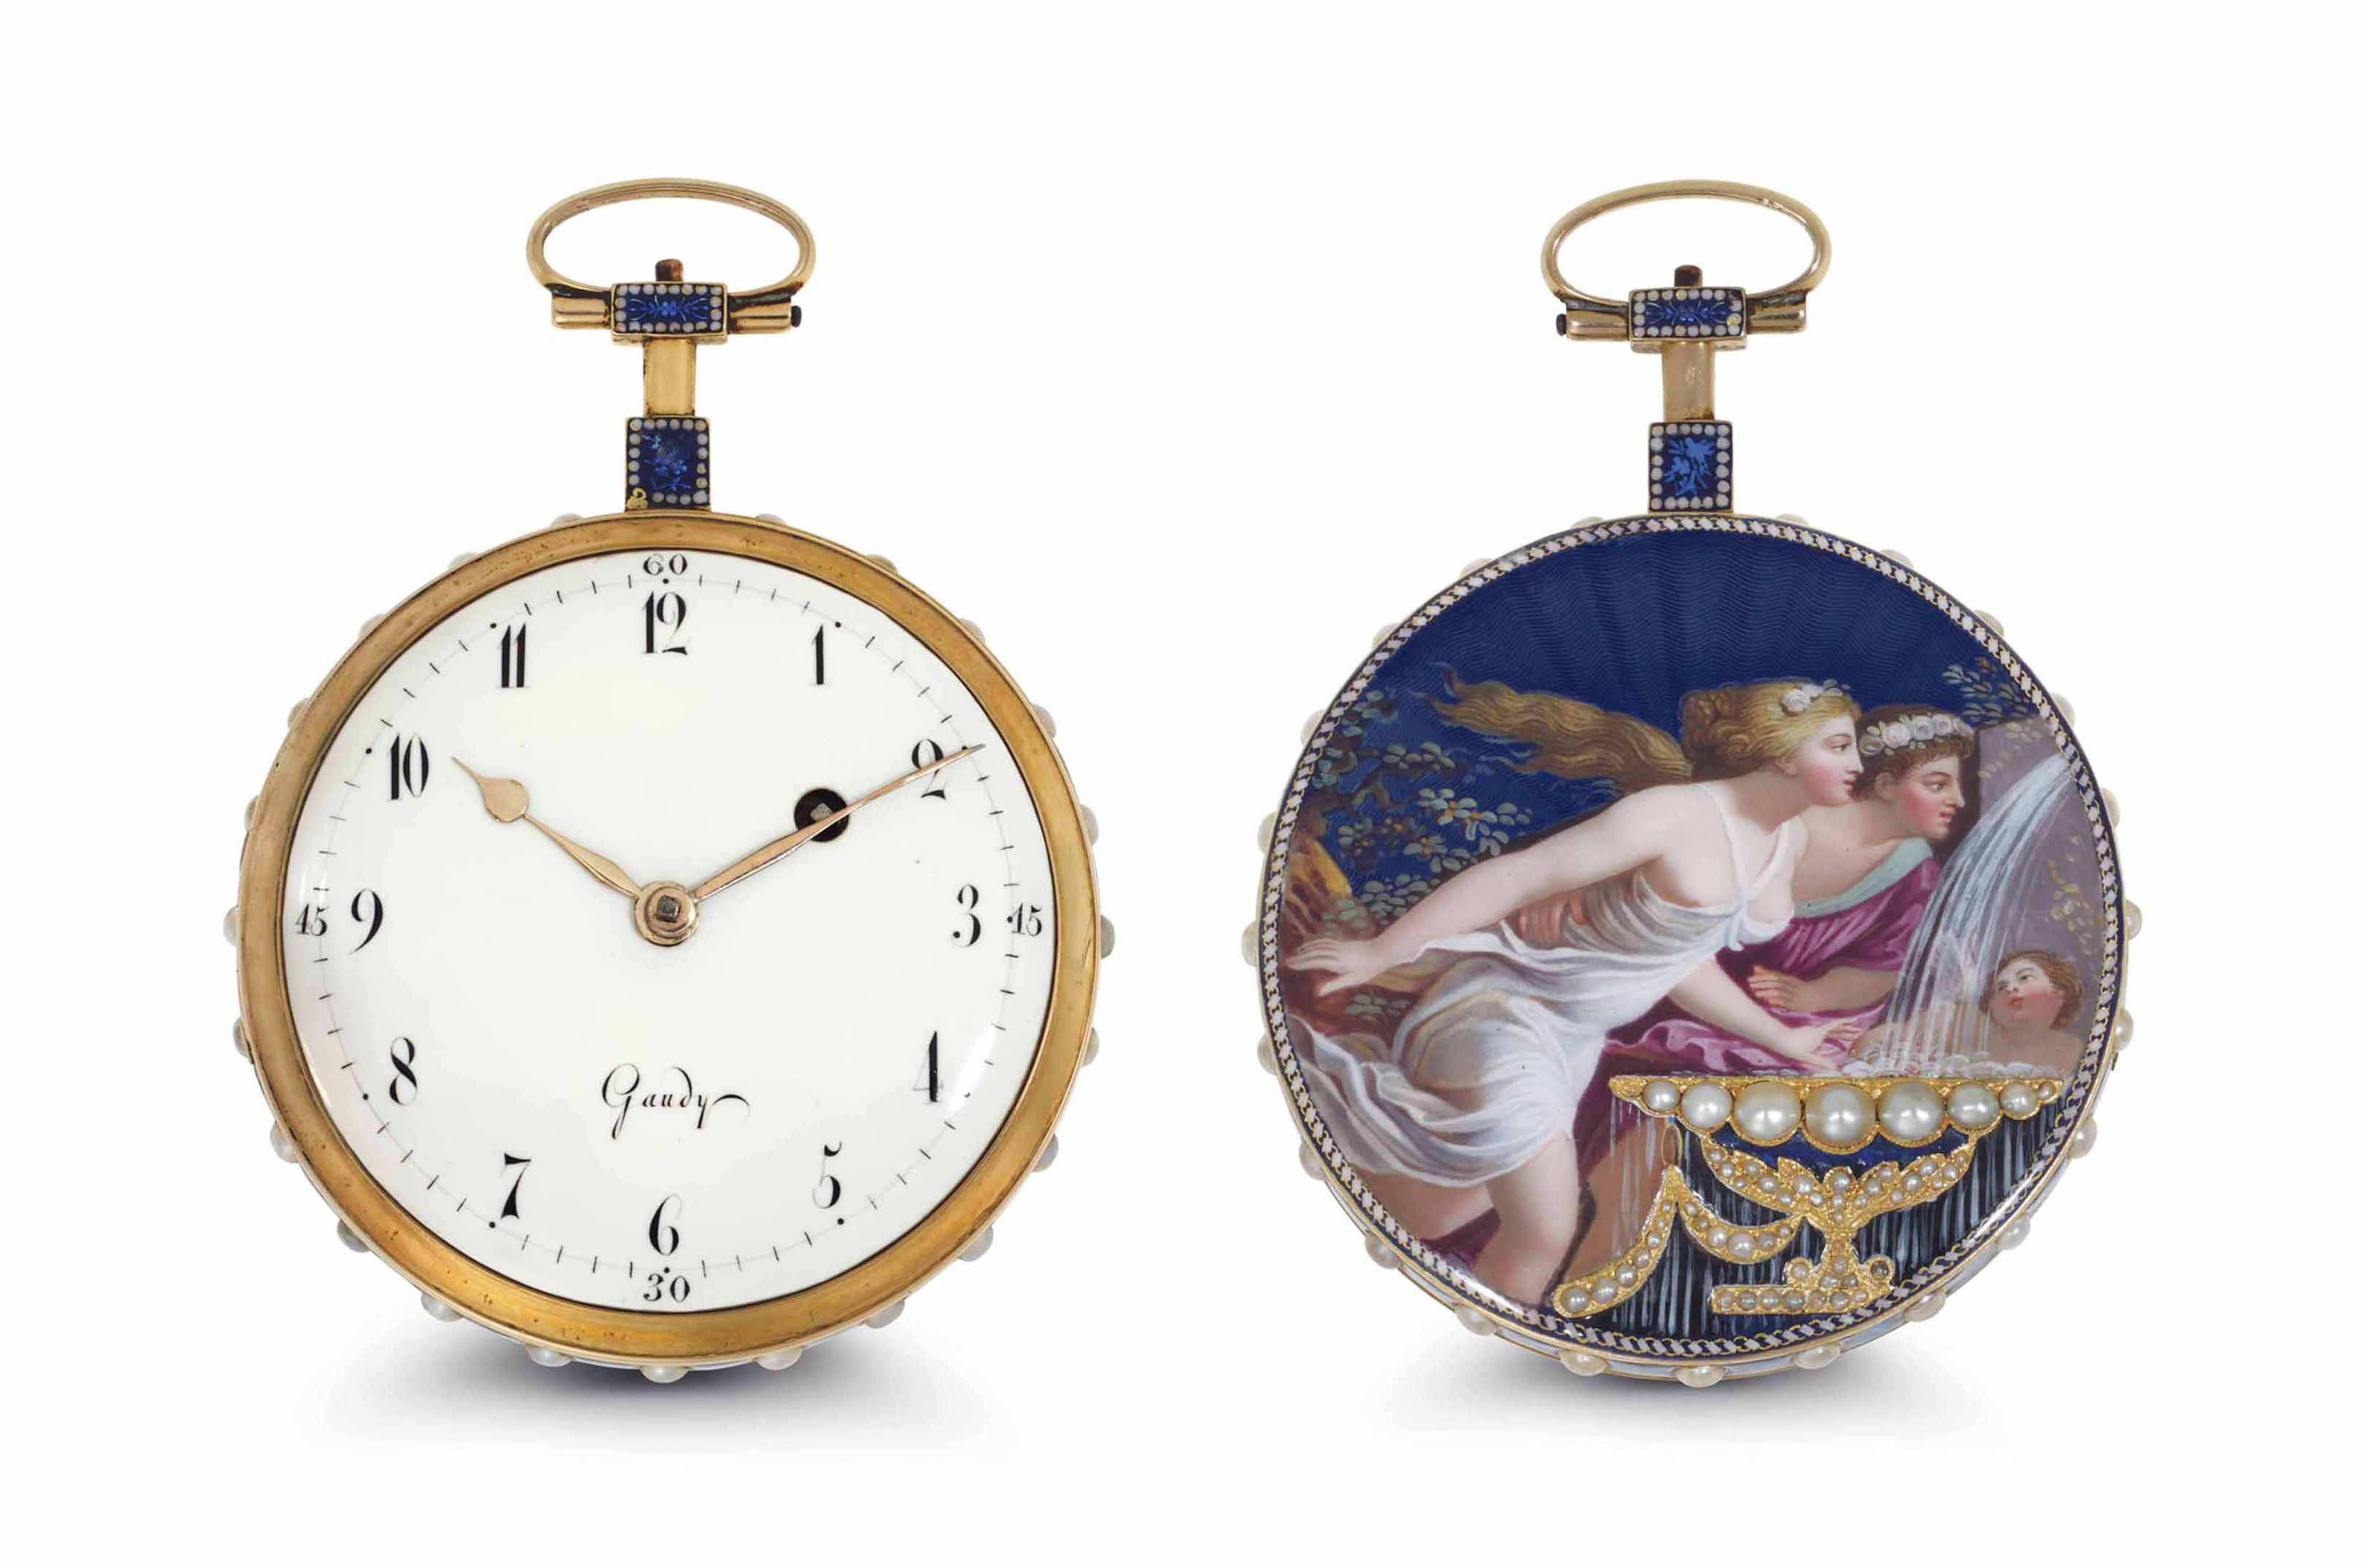 Gaudy. A Fine And Slim 18K Gold, Enamel And Pearl-Set Openface Verge Watch